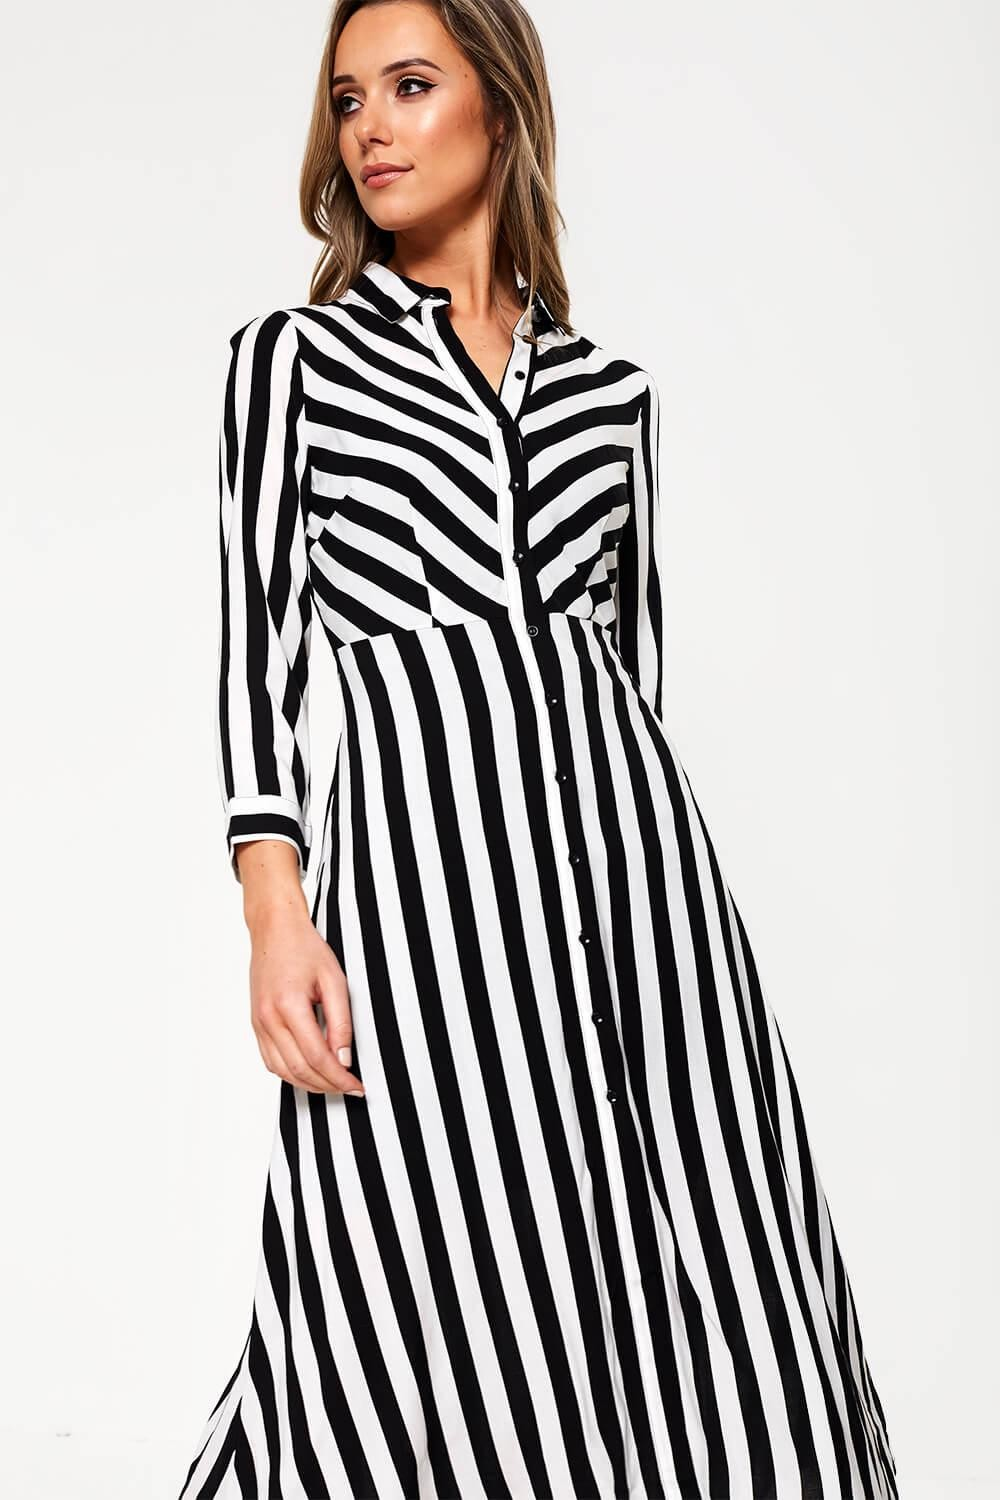 lowest discount get online discount coupon Savanna Striped Midi Shirt Dress in Black